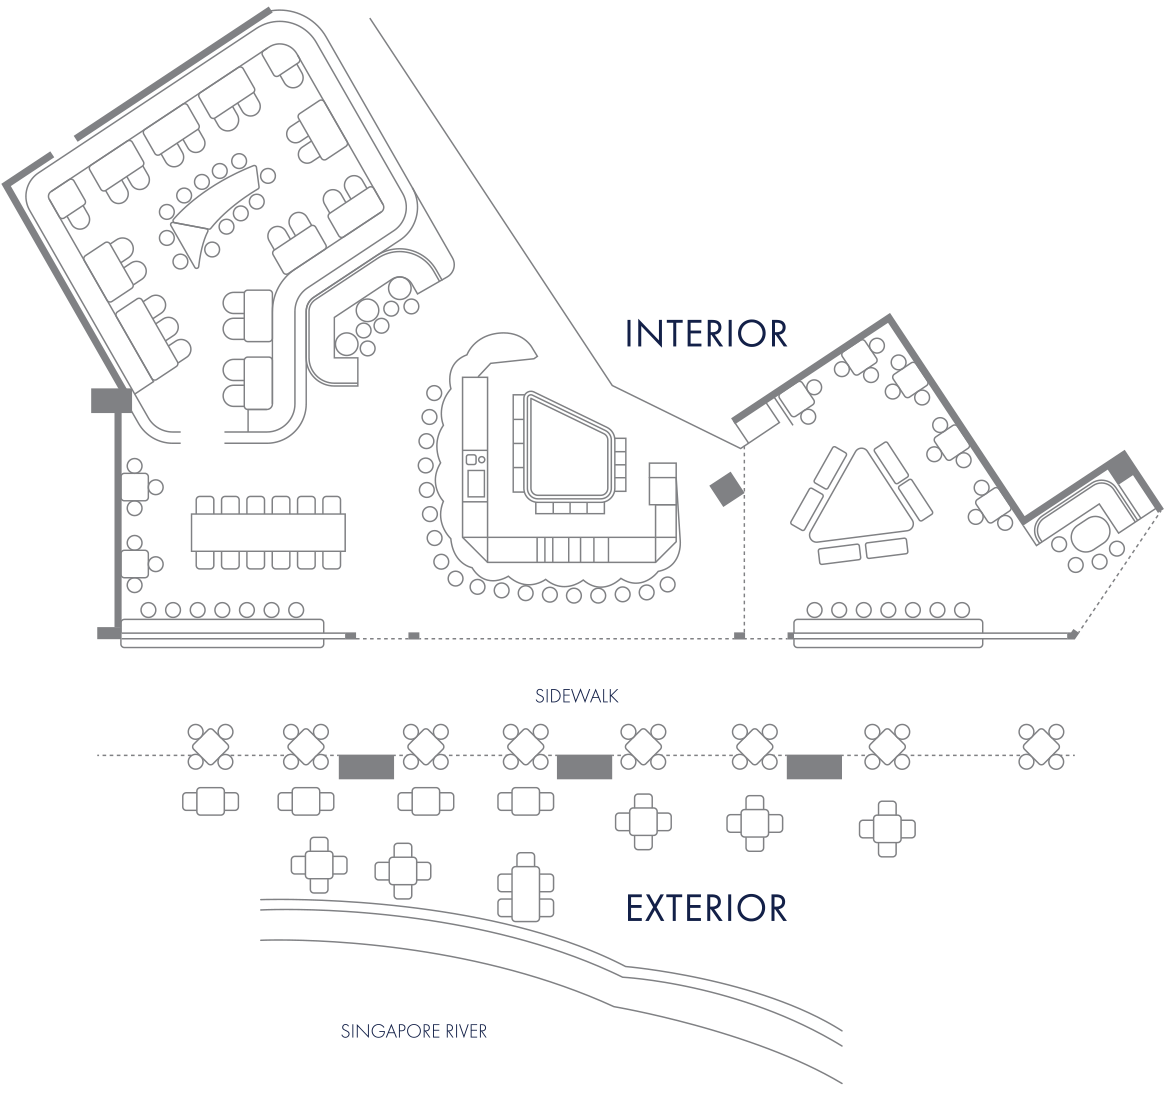 Brewerkz_Outlet_Floor_Plans_FA_RiversidePoint